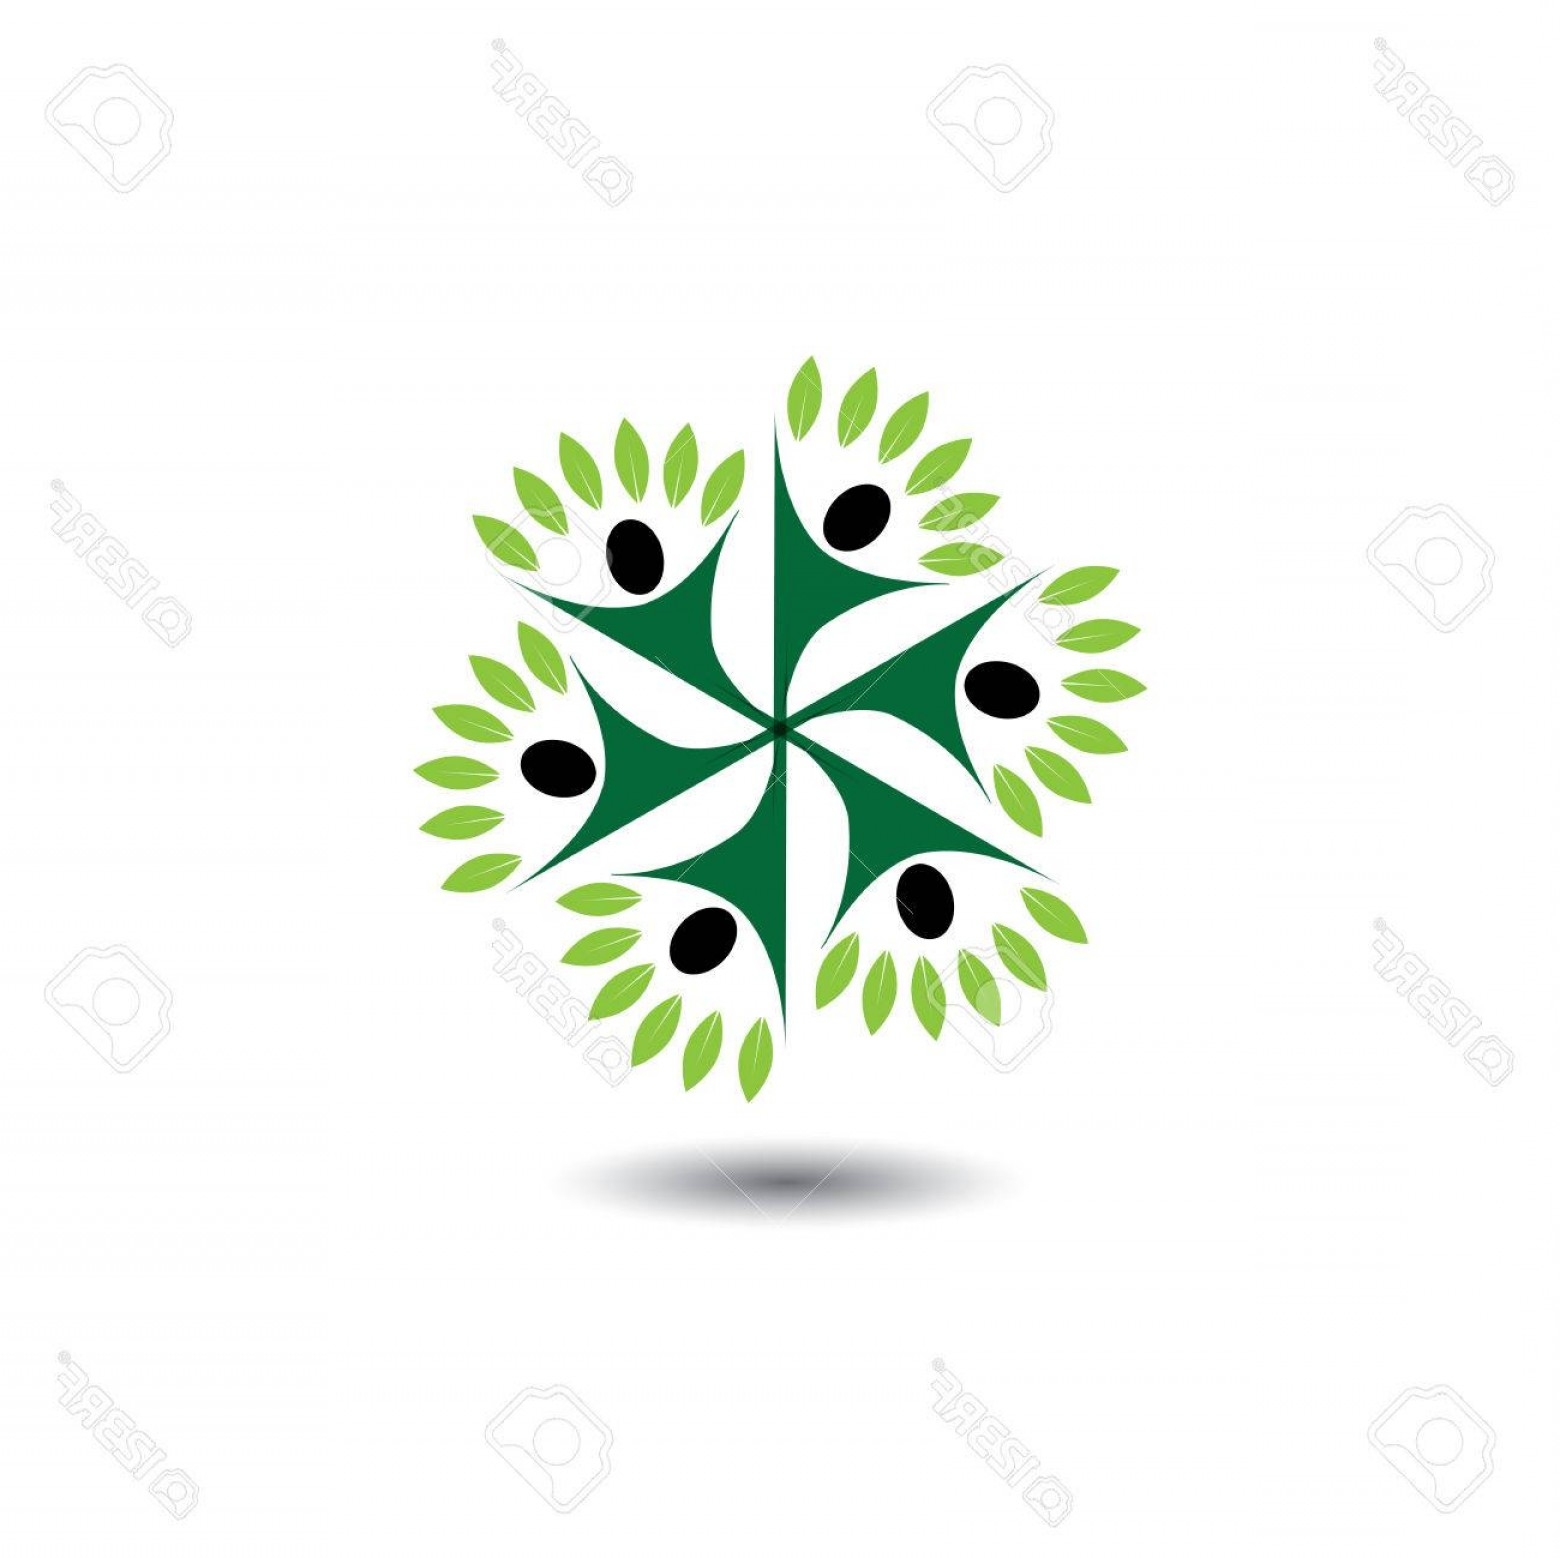 Growth Vector People: Photostock Vector People Nature Balance Circle Eco Lifestyle Concept Vector Icon This Graphic Also Represents Harmony